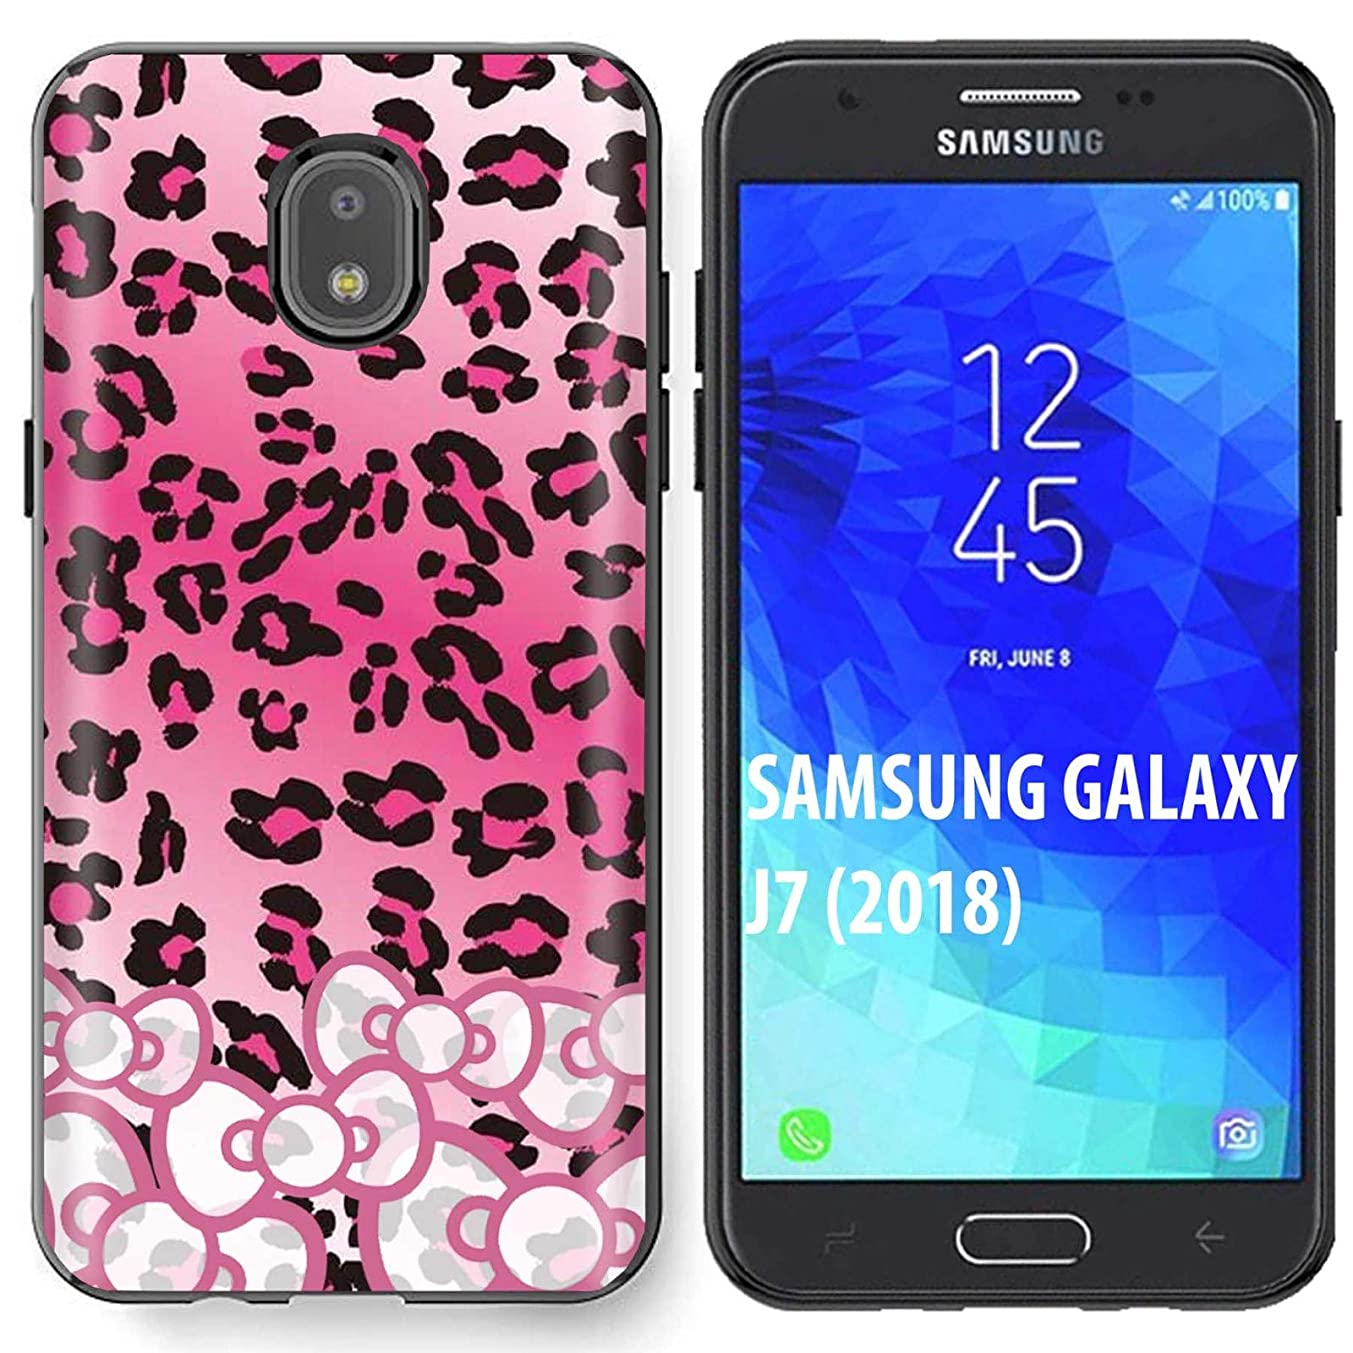 [SkinGuardz] Samsung Galaxy (J7 2018)/J7 Aero/J7 Refine/J7 Star/J737/J7 V 2nd Gen [Black] Slim Case [Pink Leopard Ribbon Print]